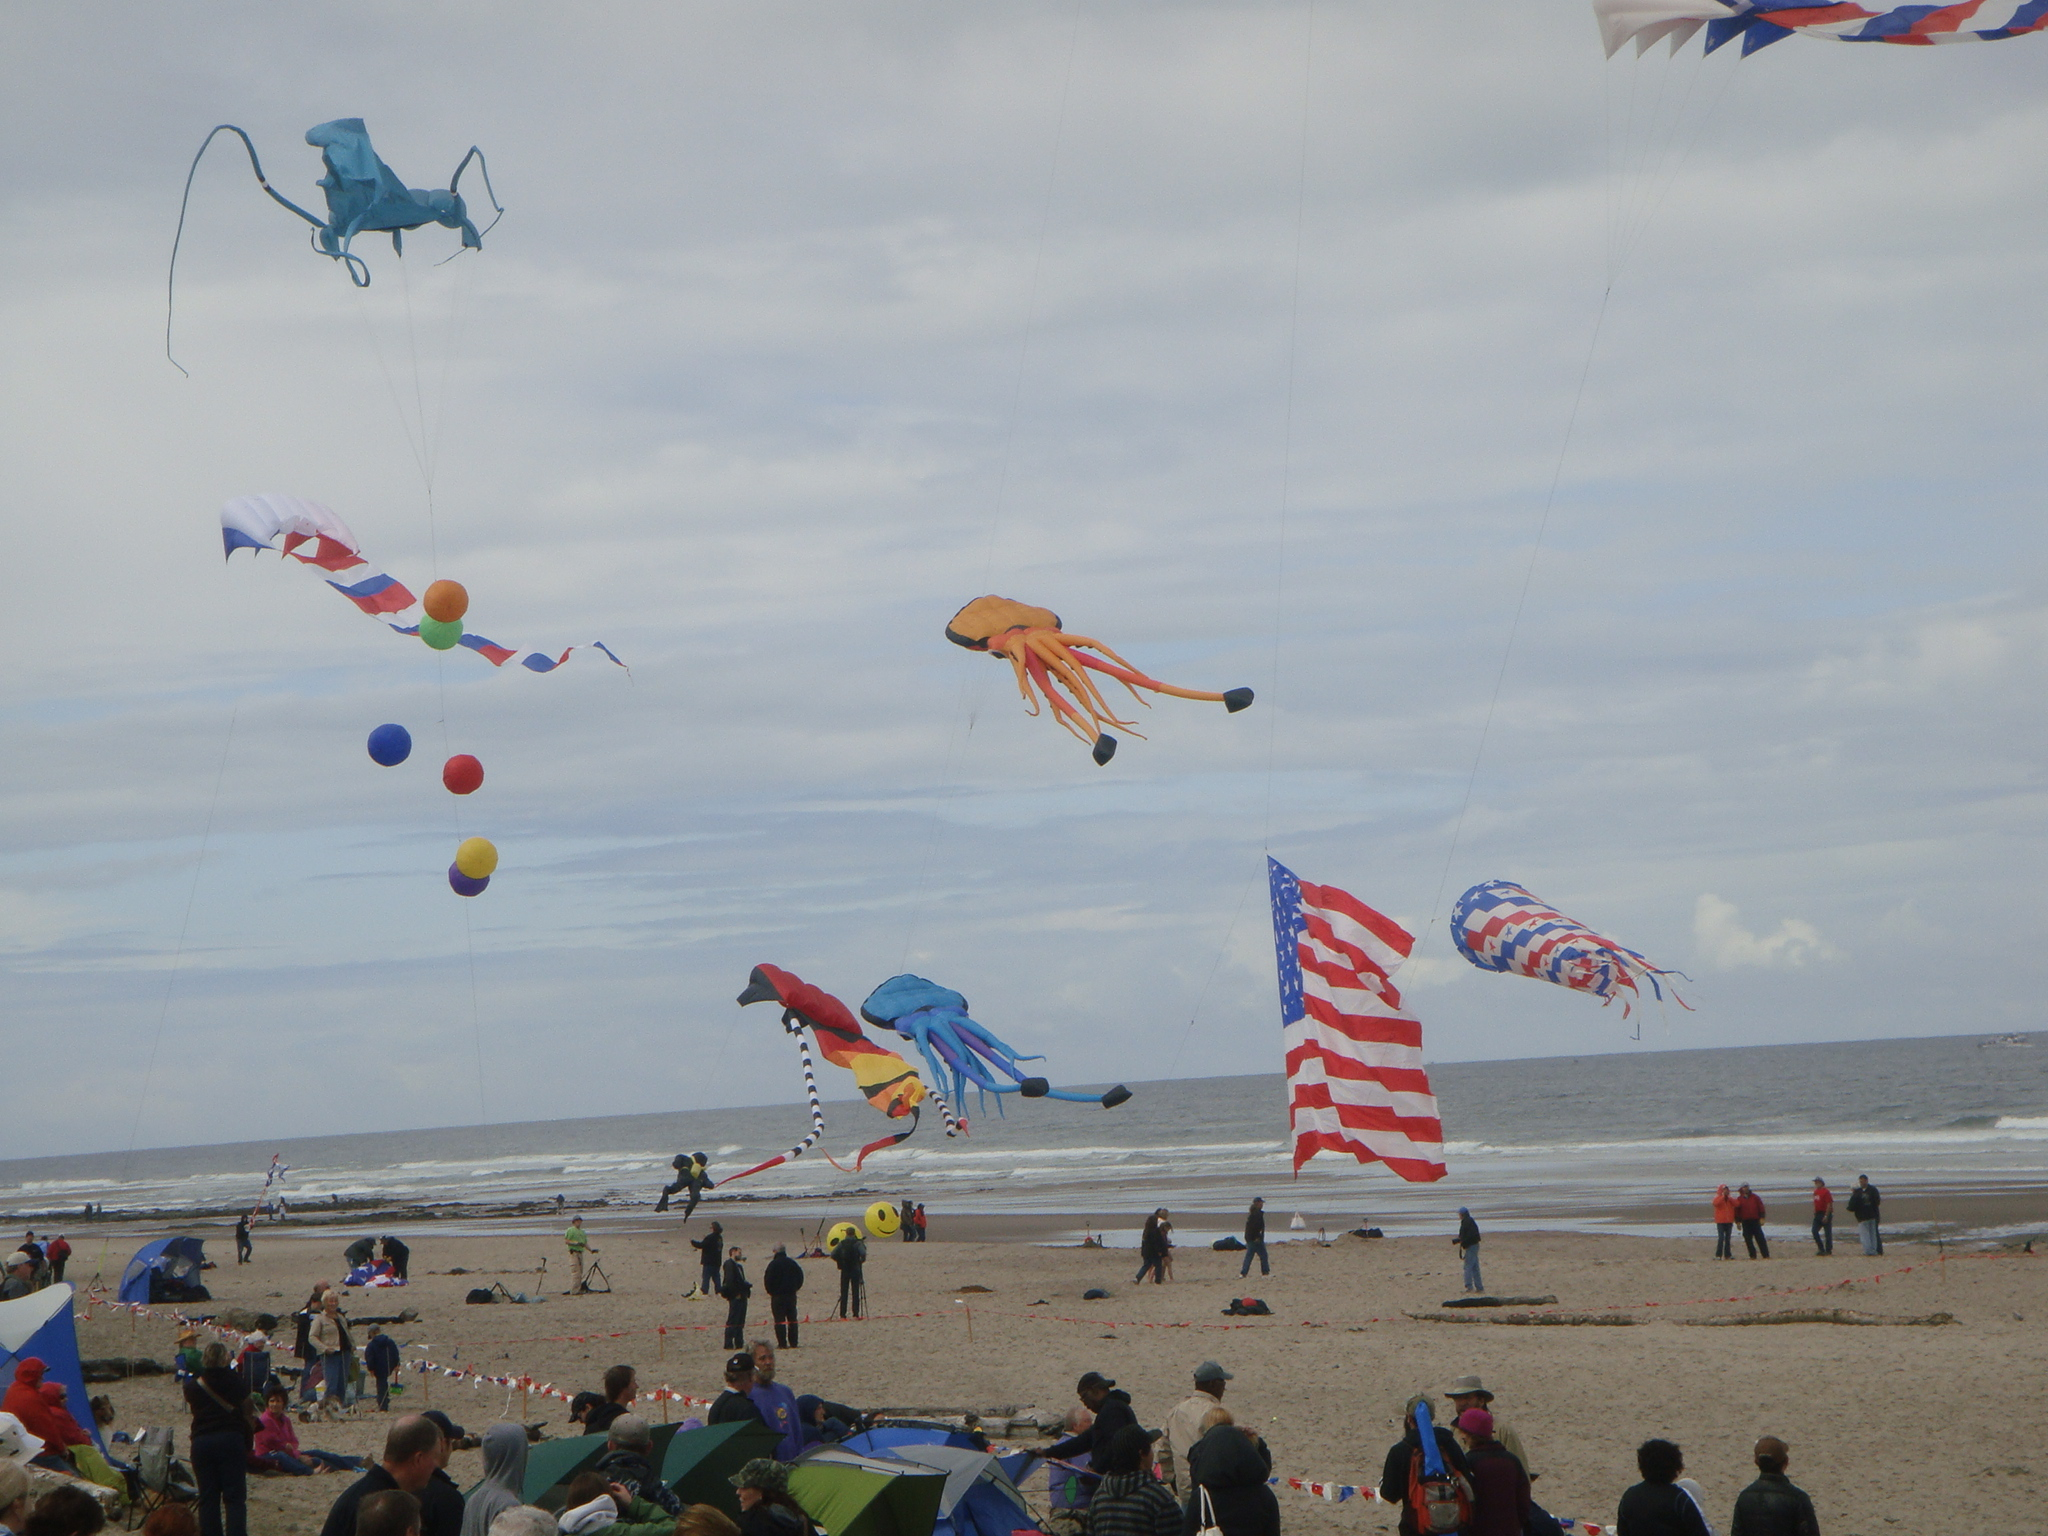 Three Kites controlled by Three People